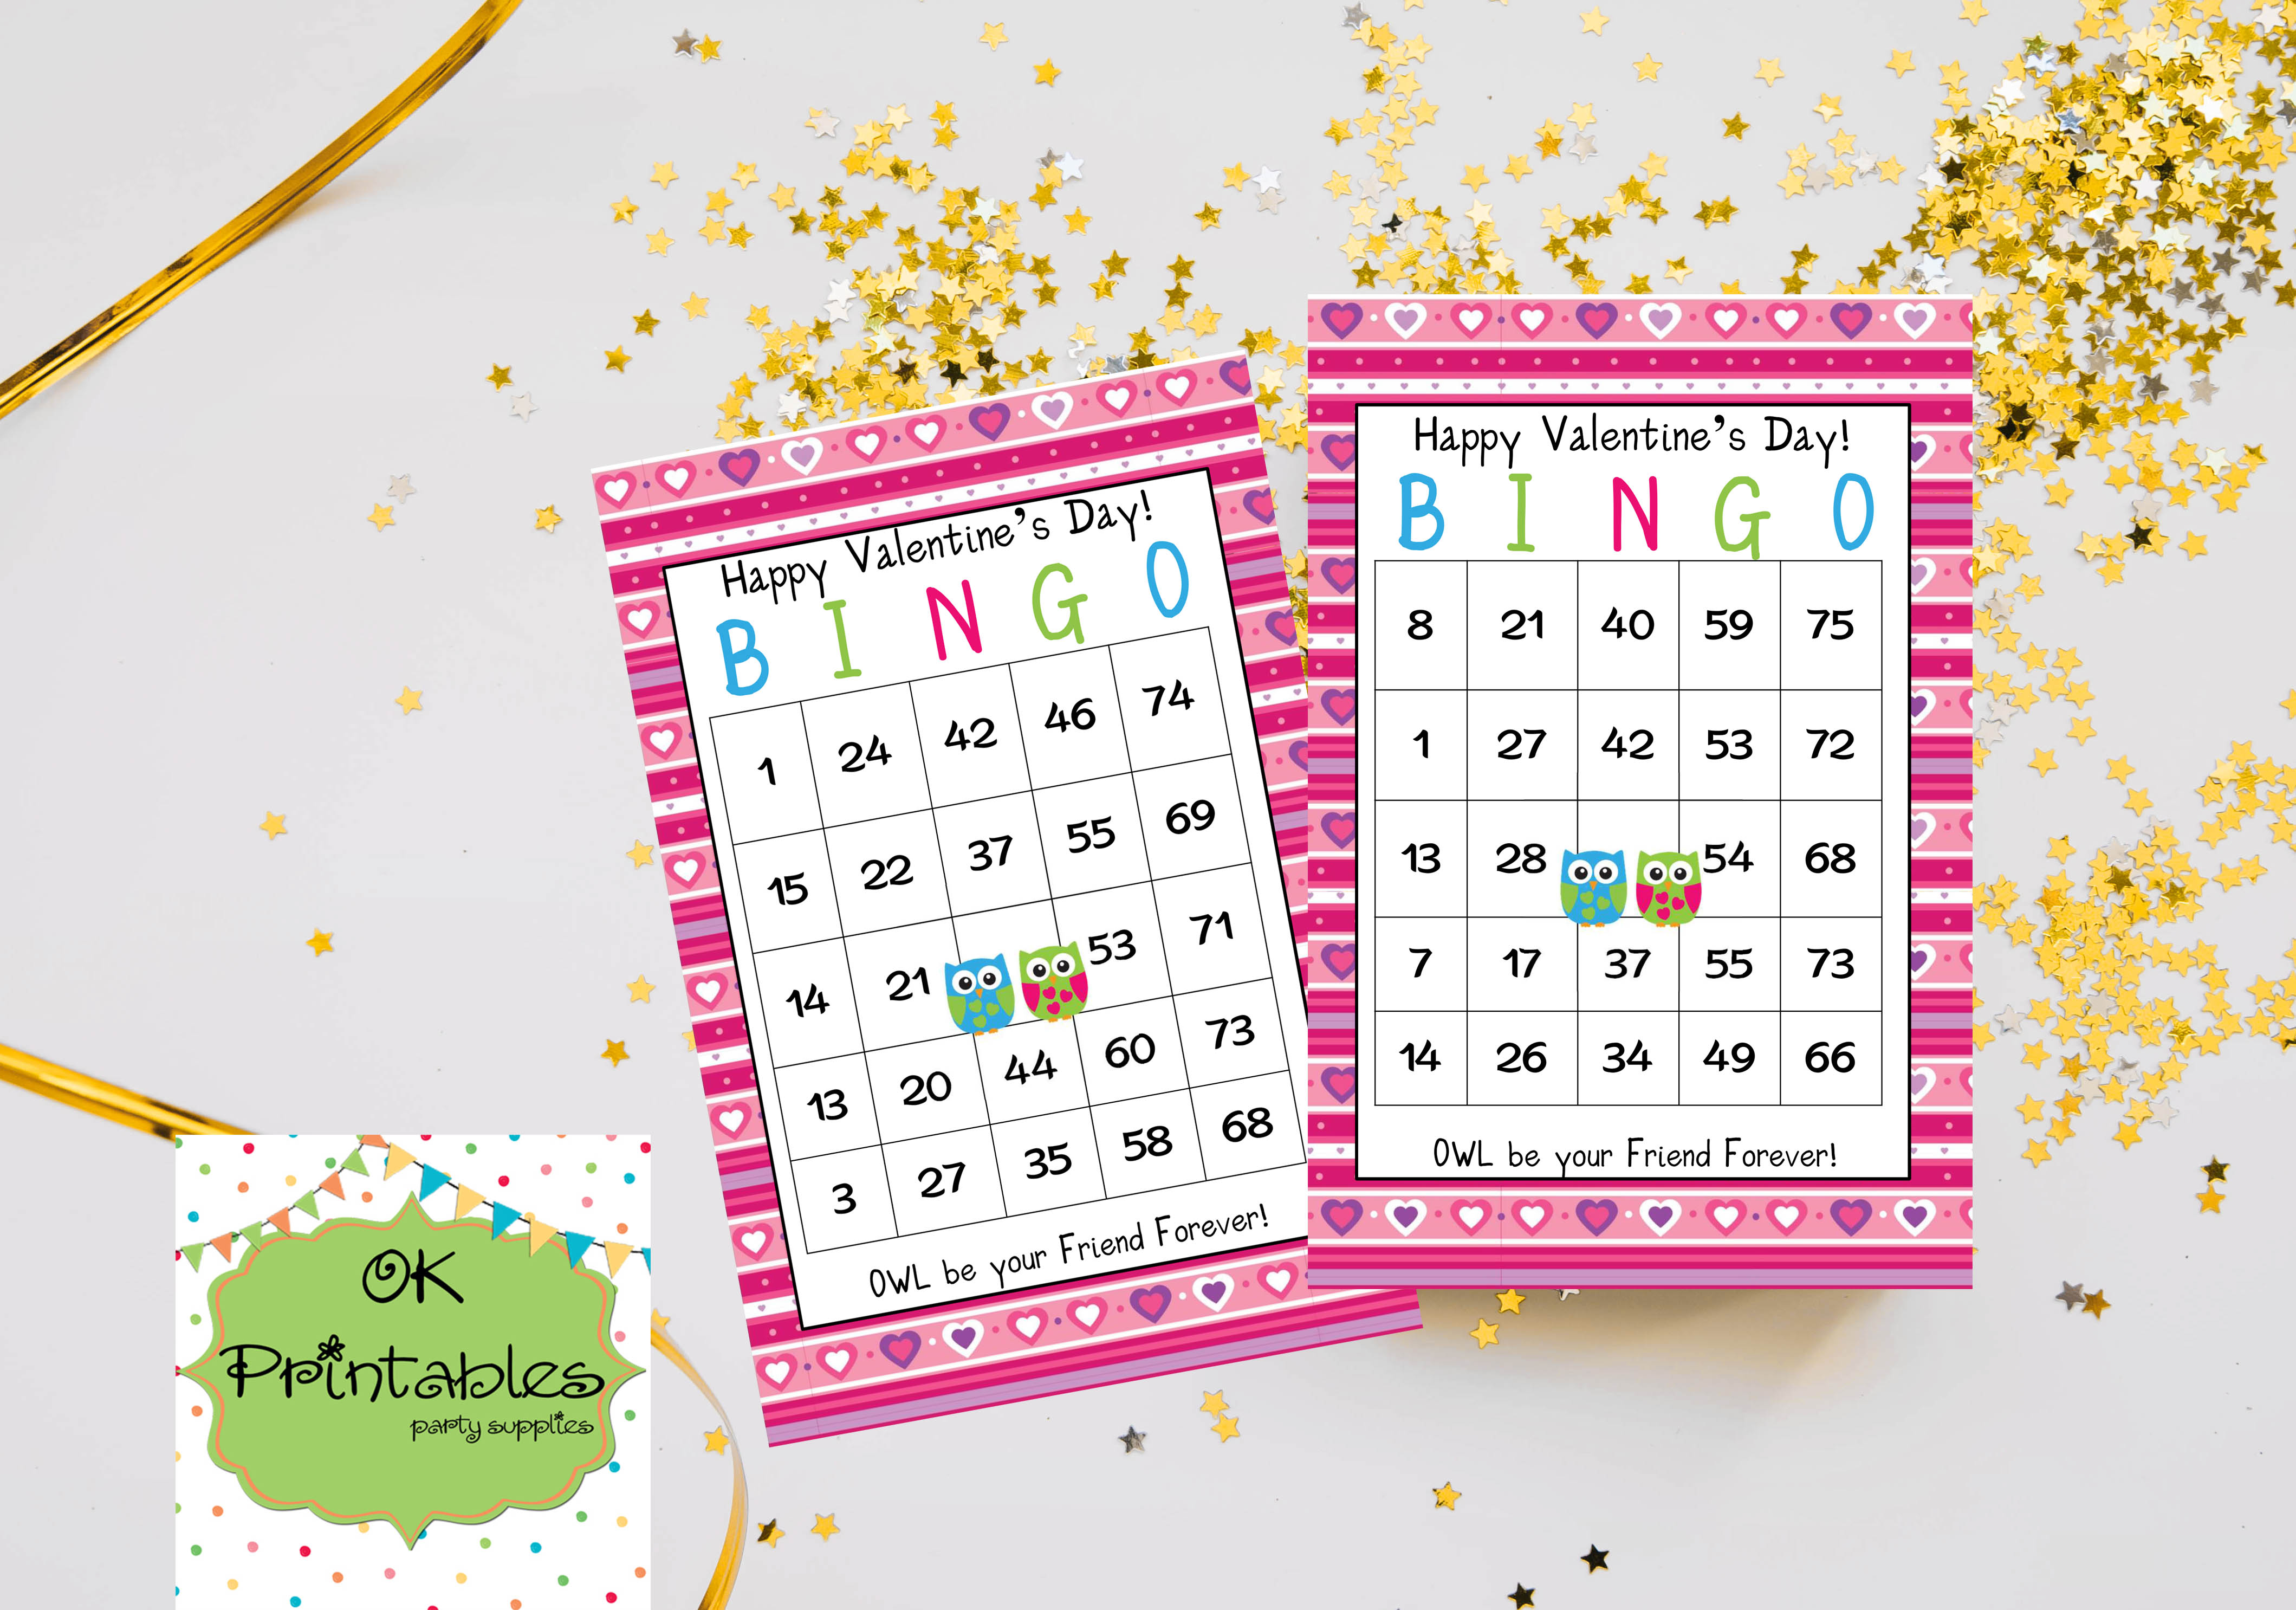 graphic regarding Valentine Day Bingo Cards Printable titled 50 Satisfied Valentine Working day Lovable Owls Bingo playing cards - Printable Match Valentin bought by way of okprintables